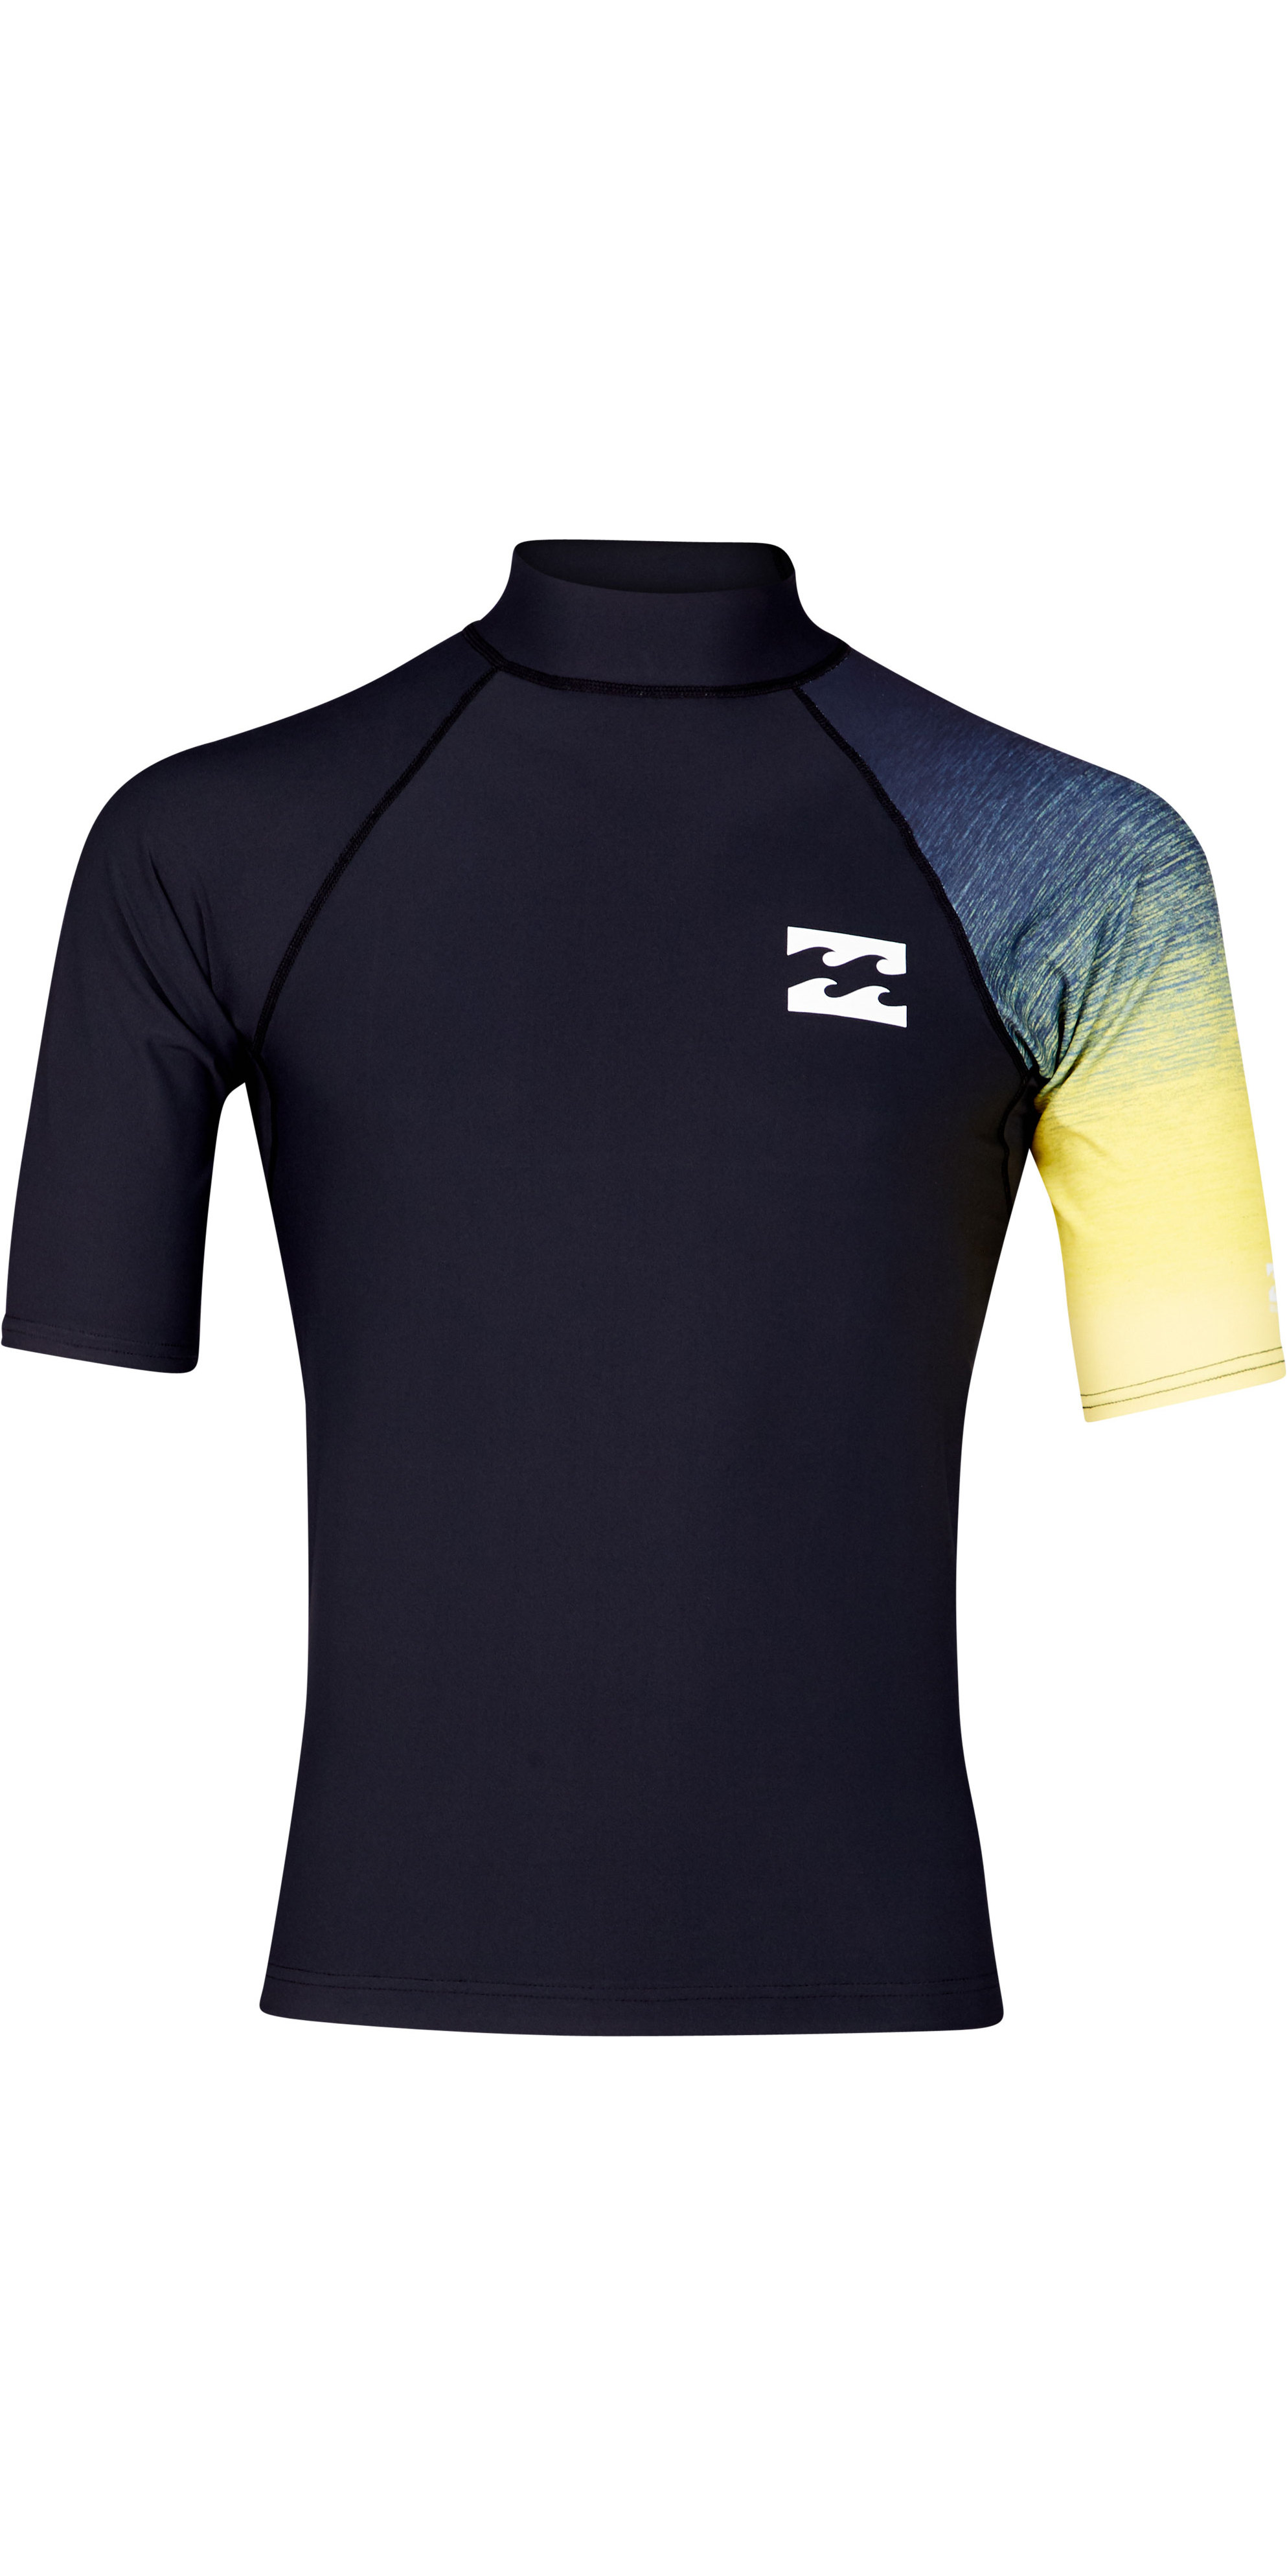 BILLABONG Junior Boys Unity Manica Lunga Rash Vest Top Rosso Completa Il Tuo Kit da Surf Performance con Unity Rashguard